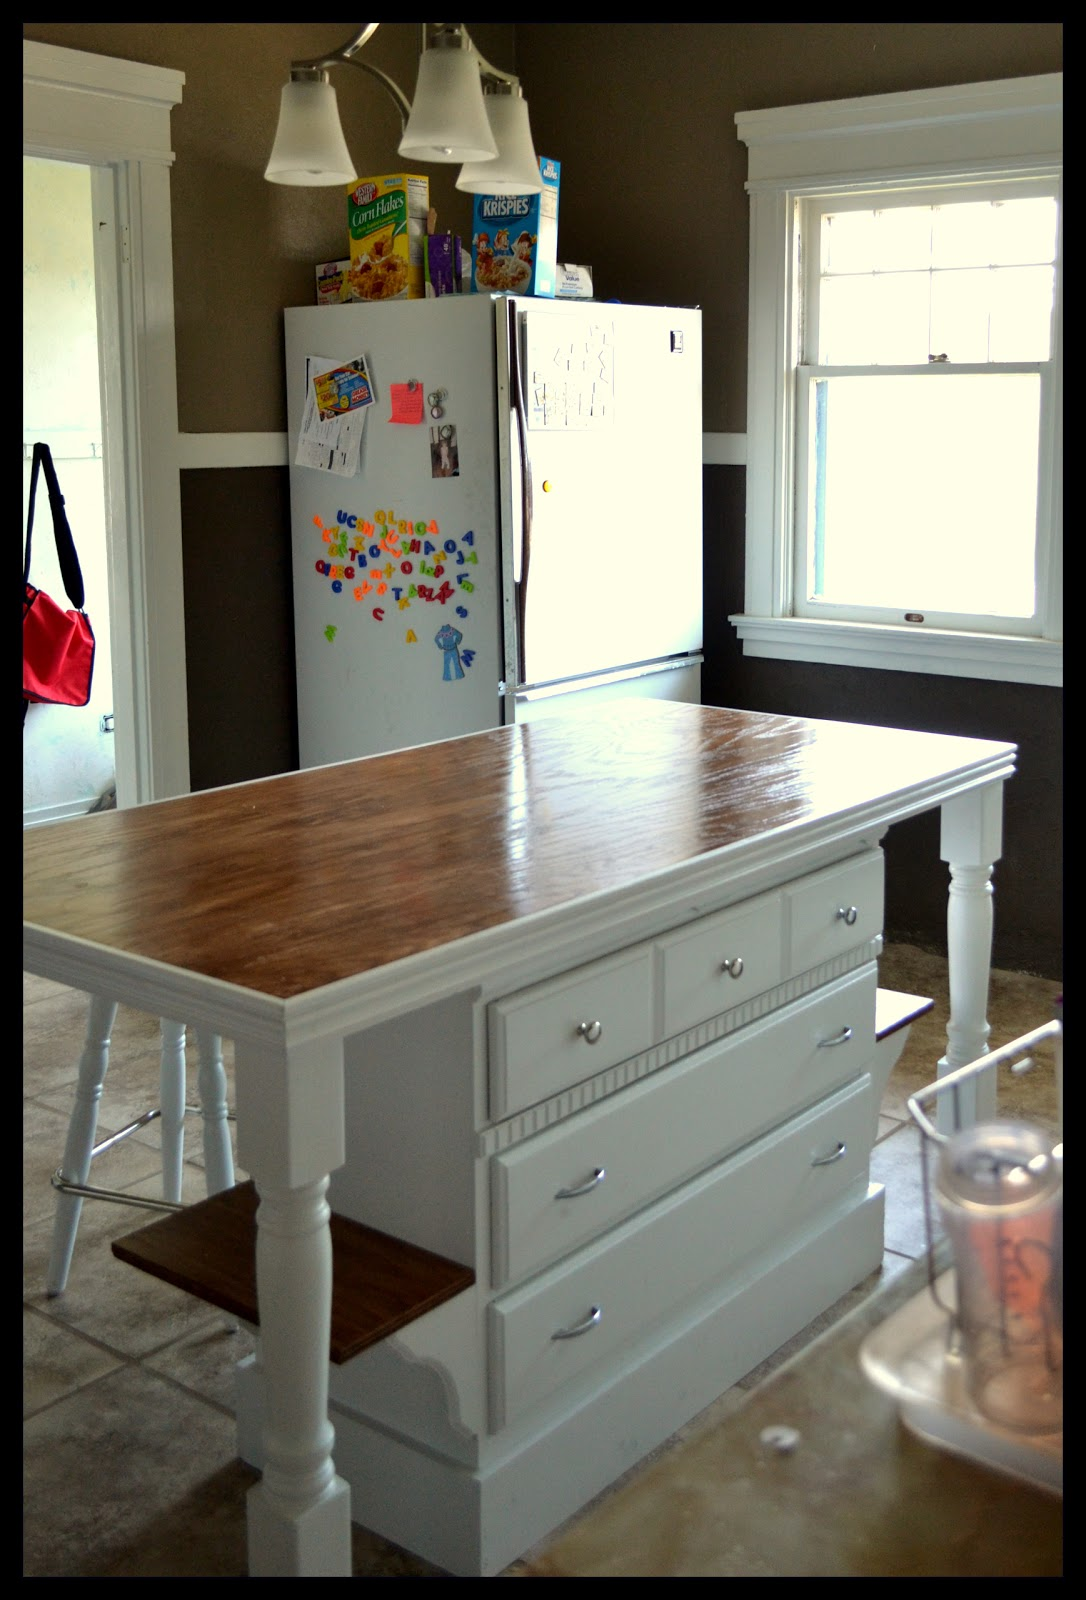 Small town small budget custom kitchen island - Kitchen islands for small kitchens ...